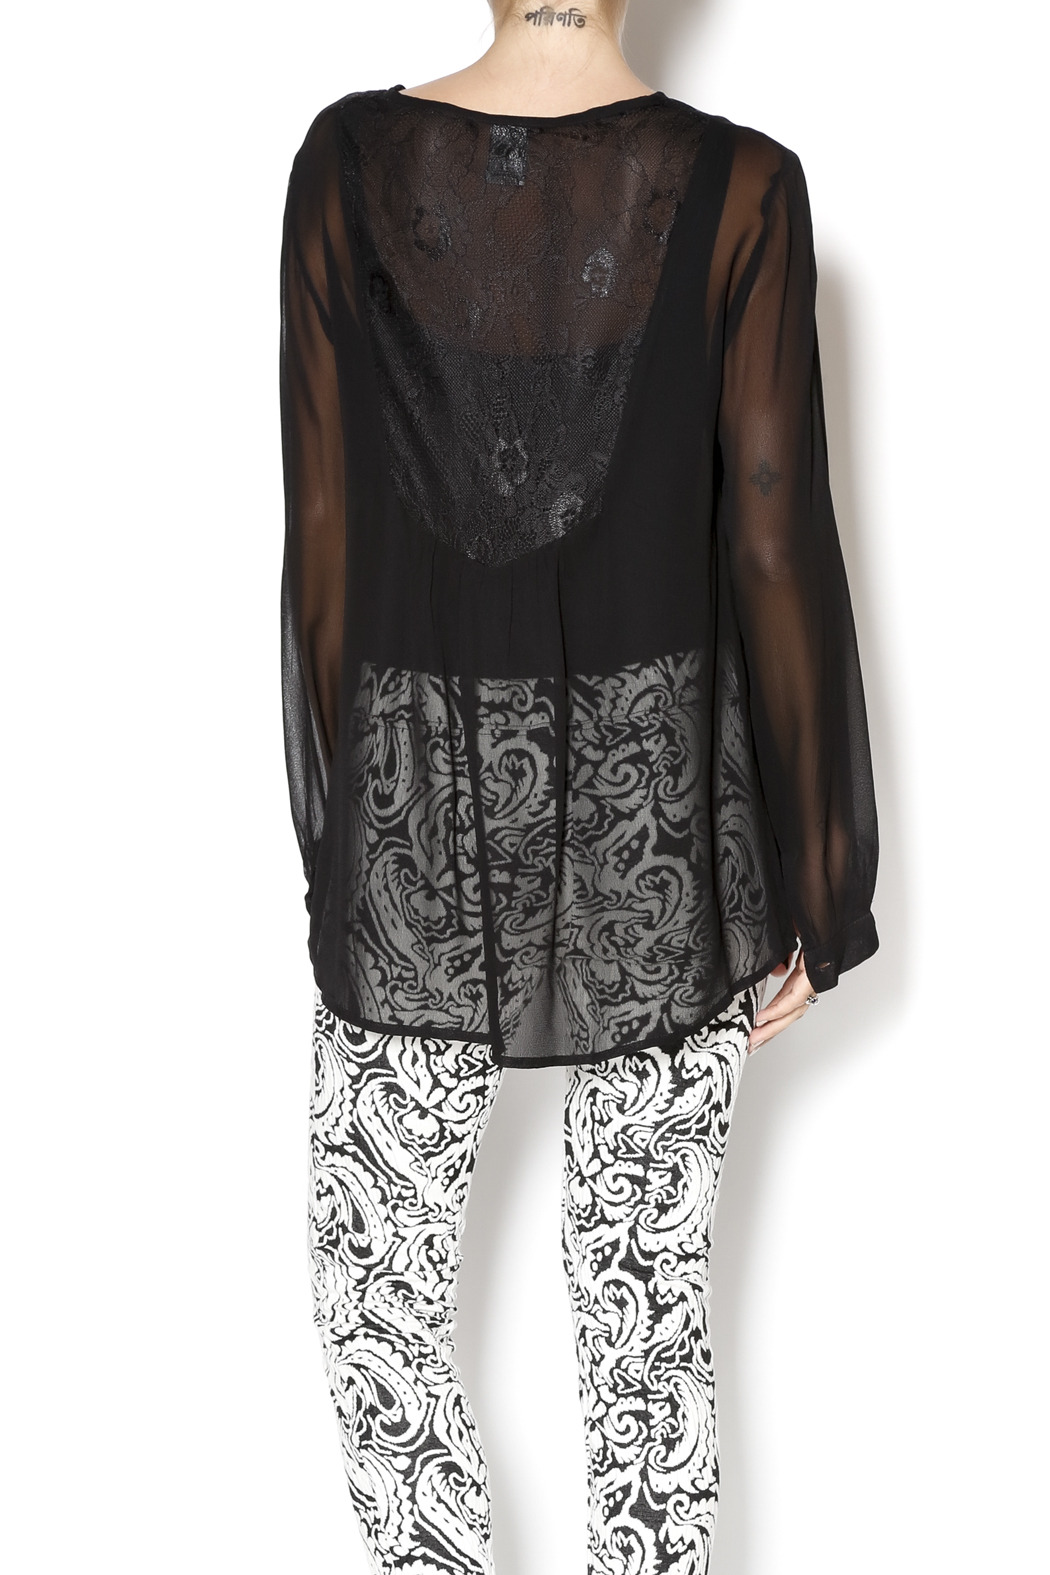 casual studio Black Sheer Blouse - Back Cropped Image